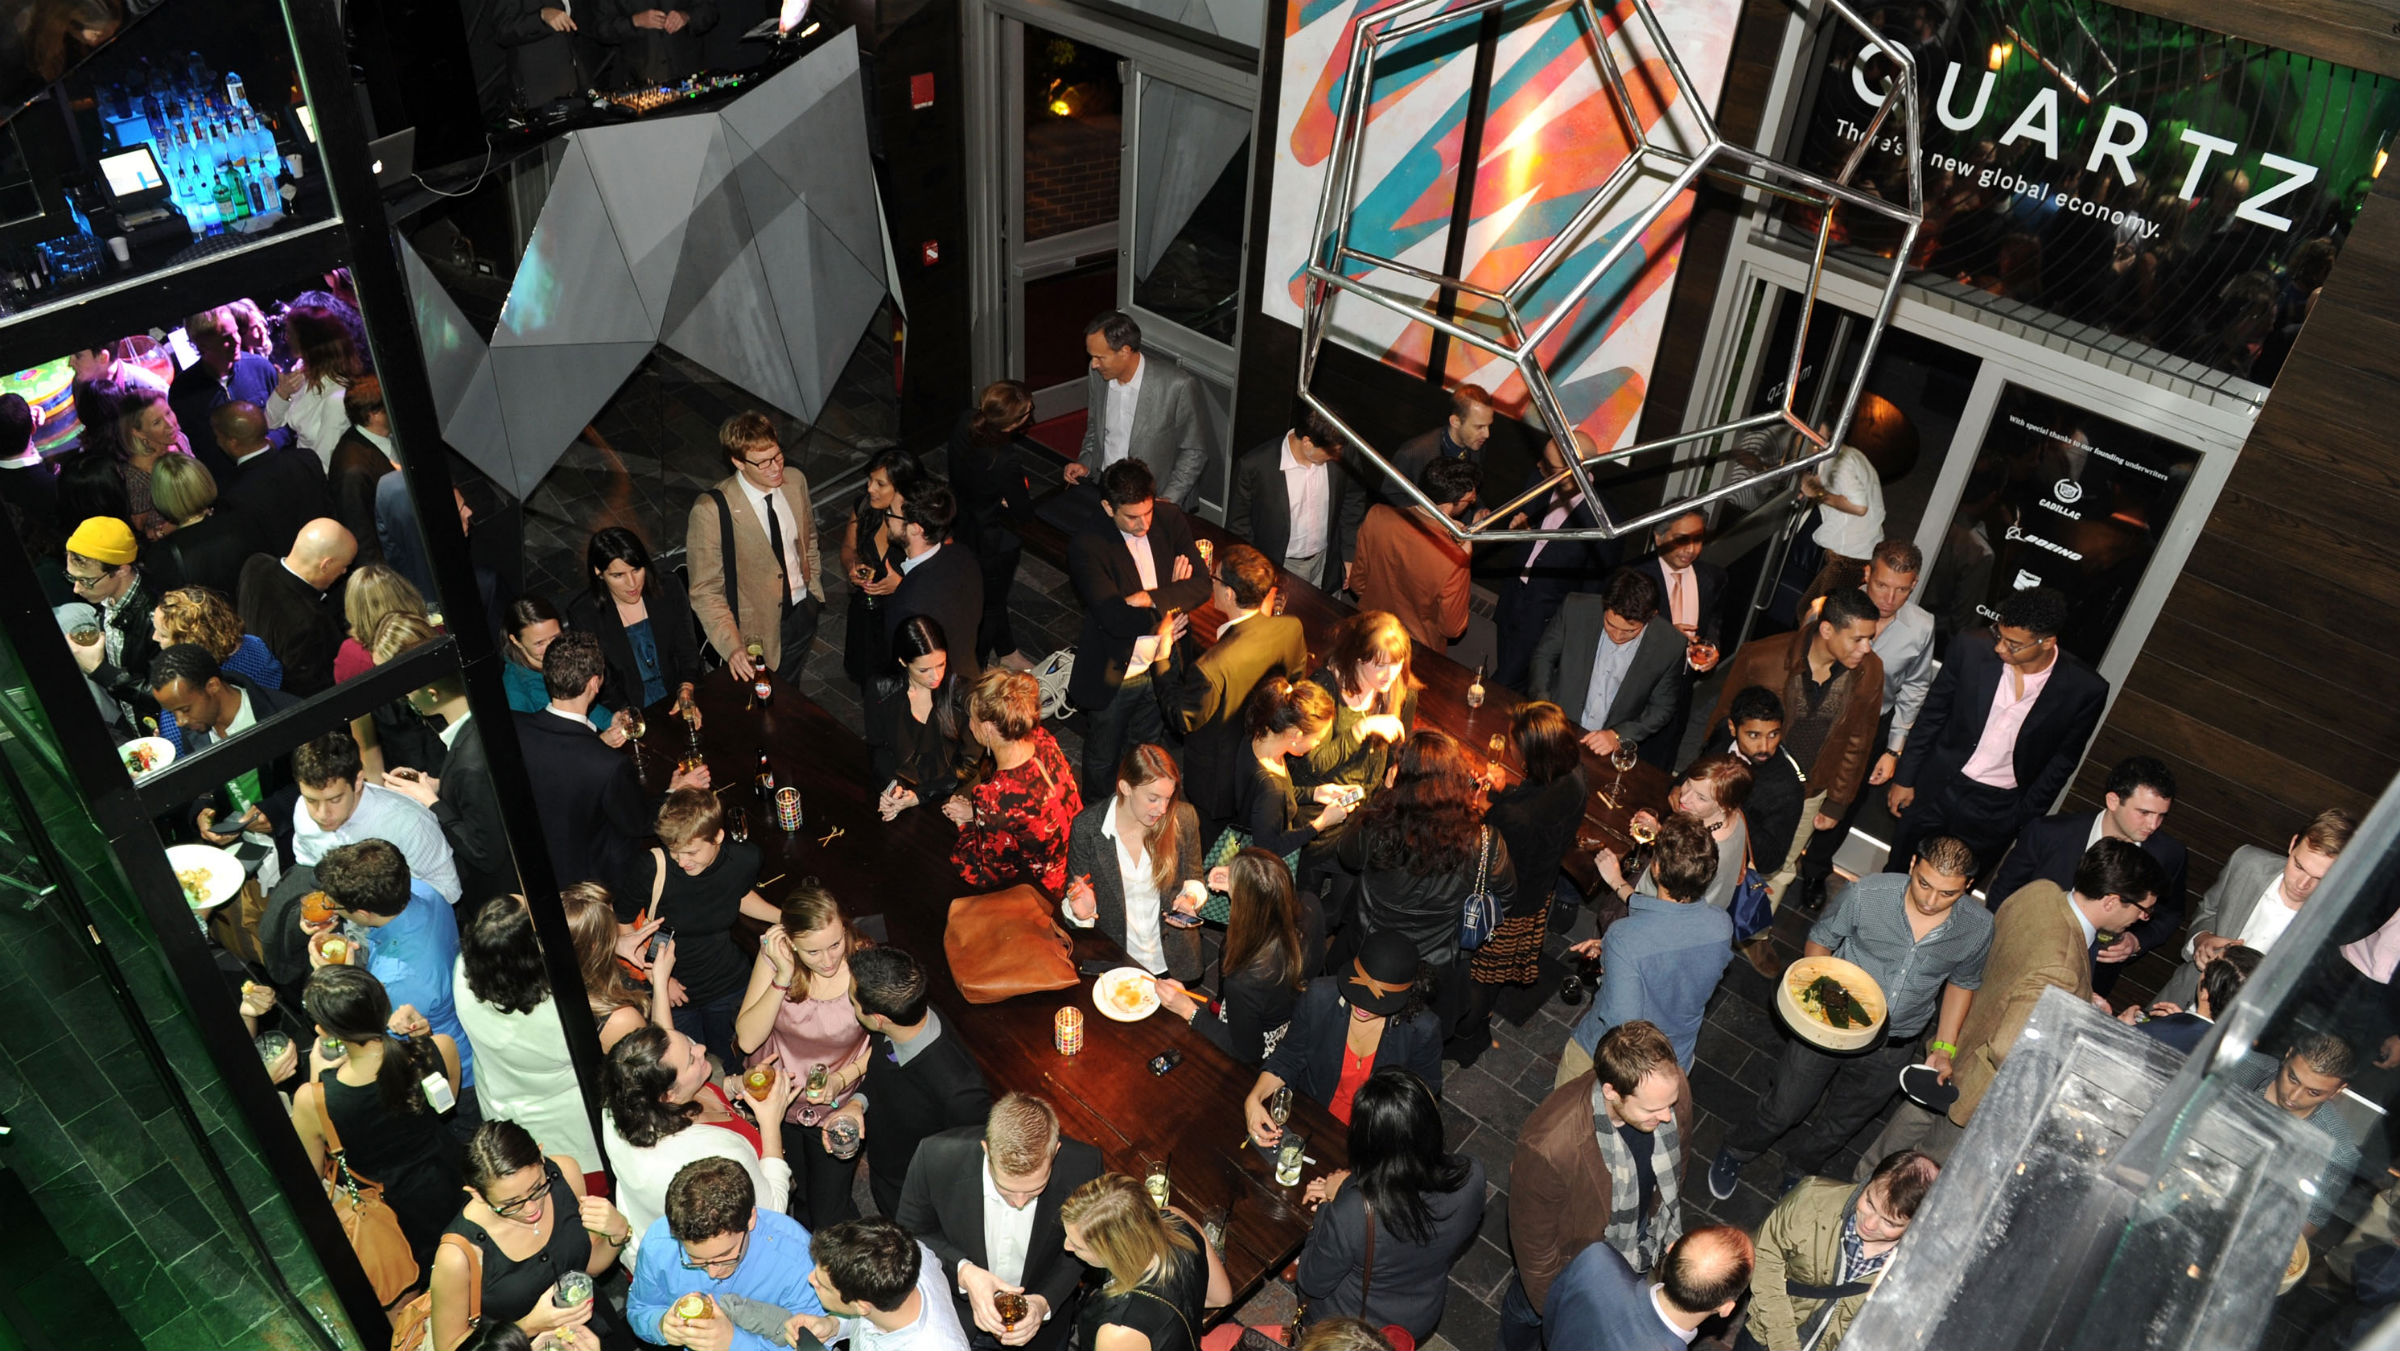 Quartz's launch party in New York on October 25, 2012.